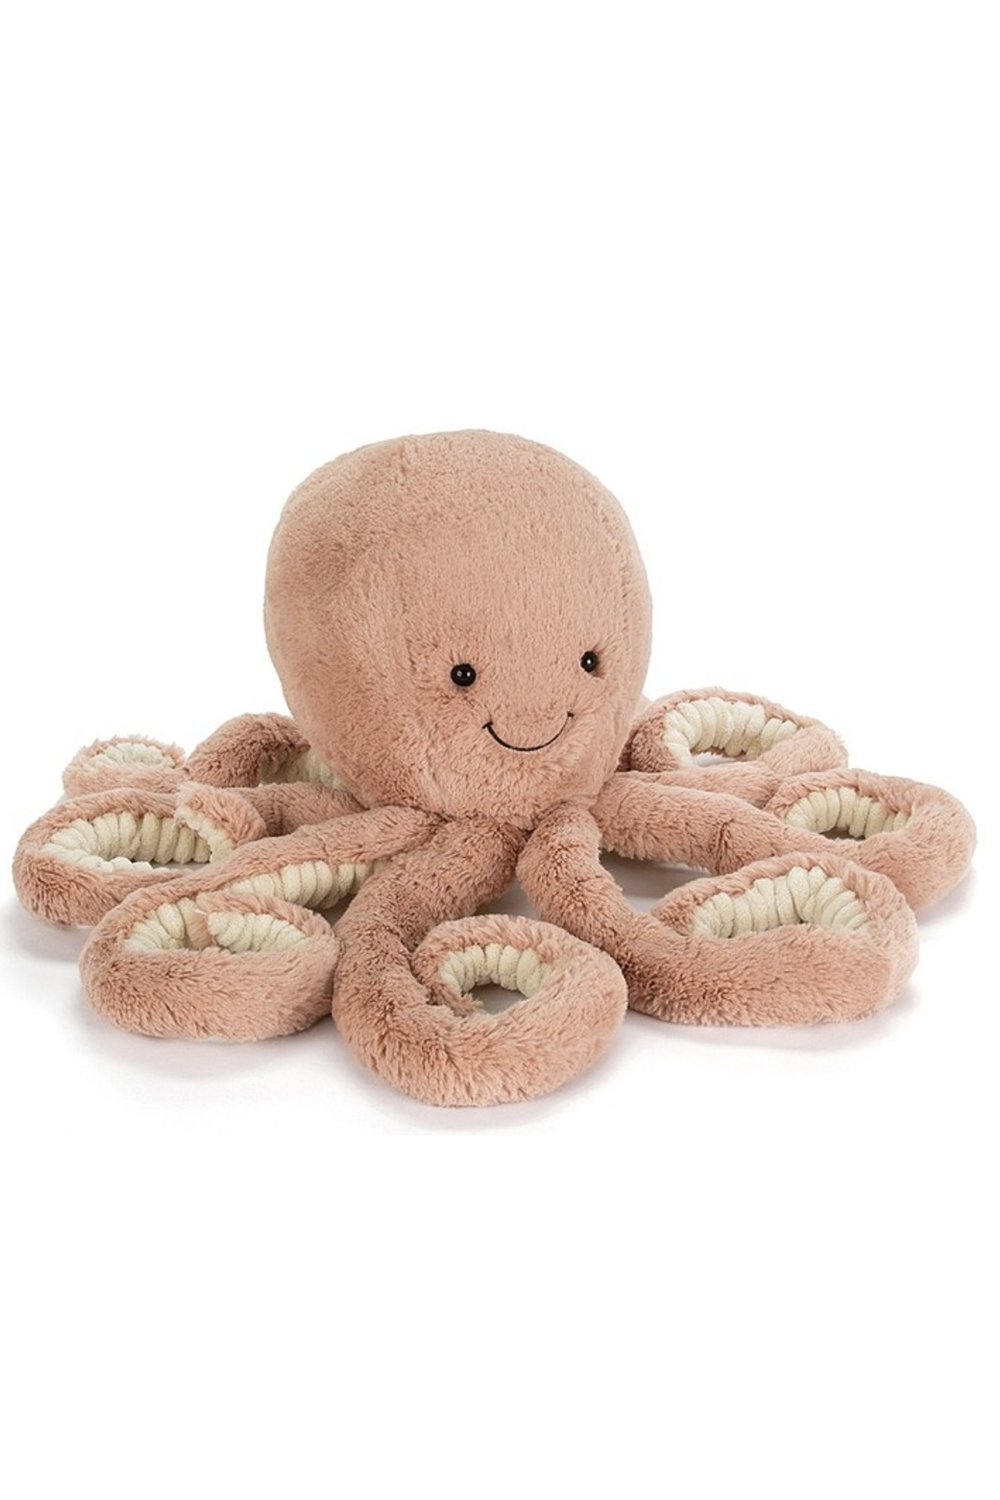 Stuffed Animal Octopus - Odell